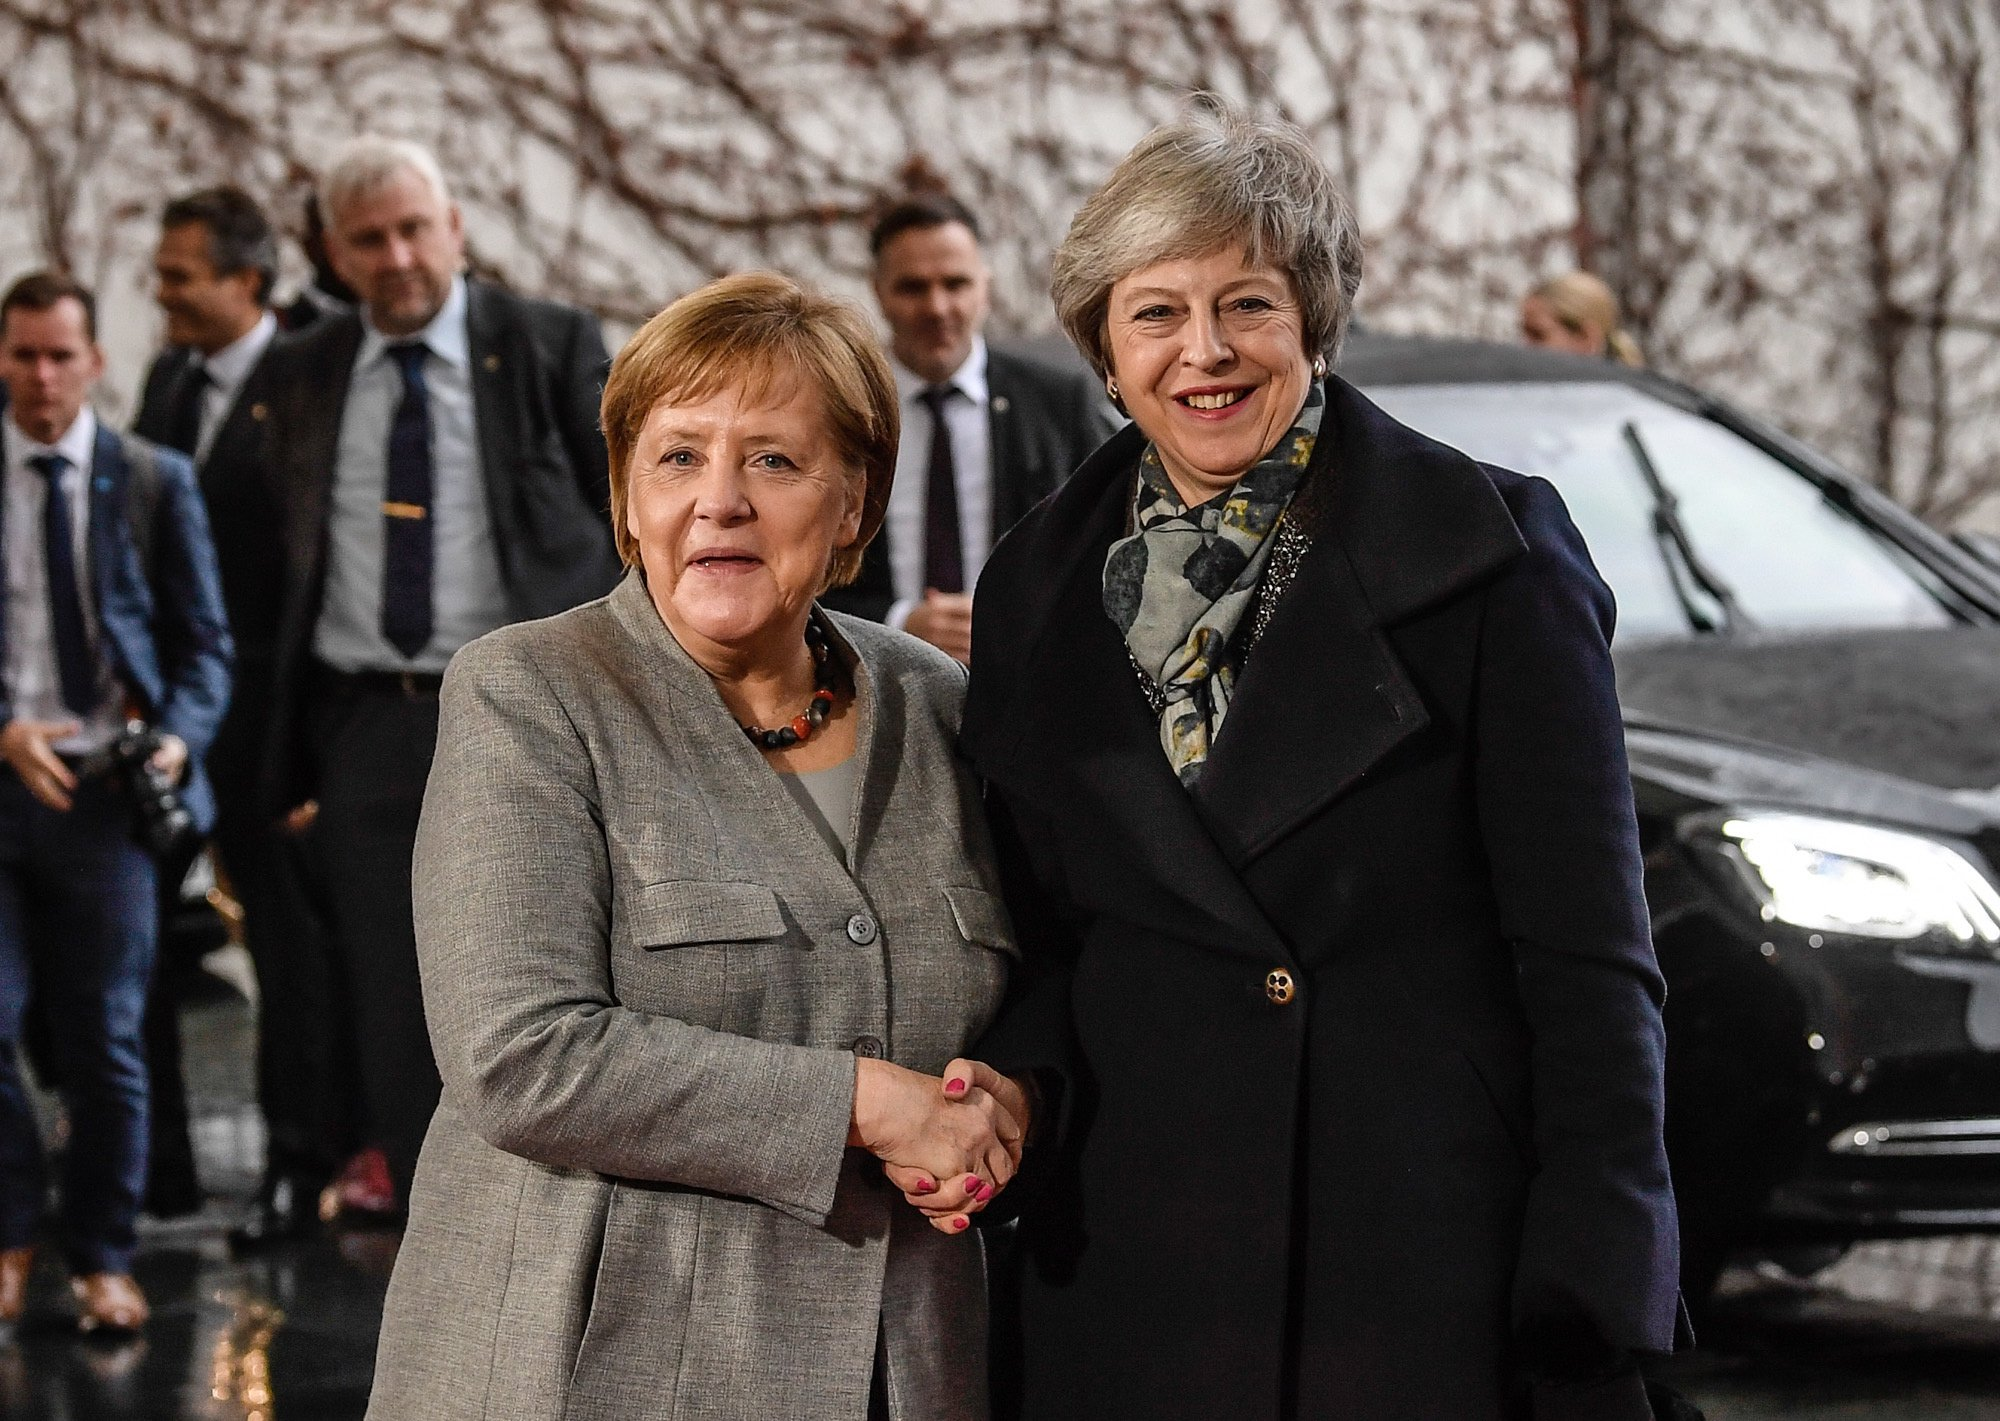 epa07223448 German Chancellor Angela Merkel (R) welcomes British Prime Minister Theresa May (L) at the chancellery in Berlin, Germany, 11 December 2018. British Prime Minister Theresa May postponed the Brexit deal Meaningful Vote, on 11 December 2018 due to risk of rejection from Members of Parliament. Theresa May is currently on a whistle stop tour of Europe calling on the leaders of the Netherlands, Germany and EU in Brussels looking for new guide lines for her Northern Ireland backstop. EPA/FILIP SINGER